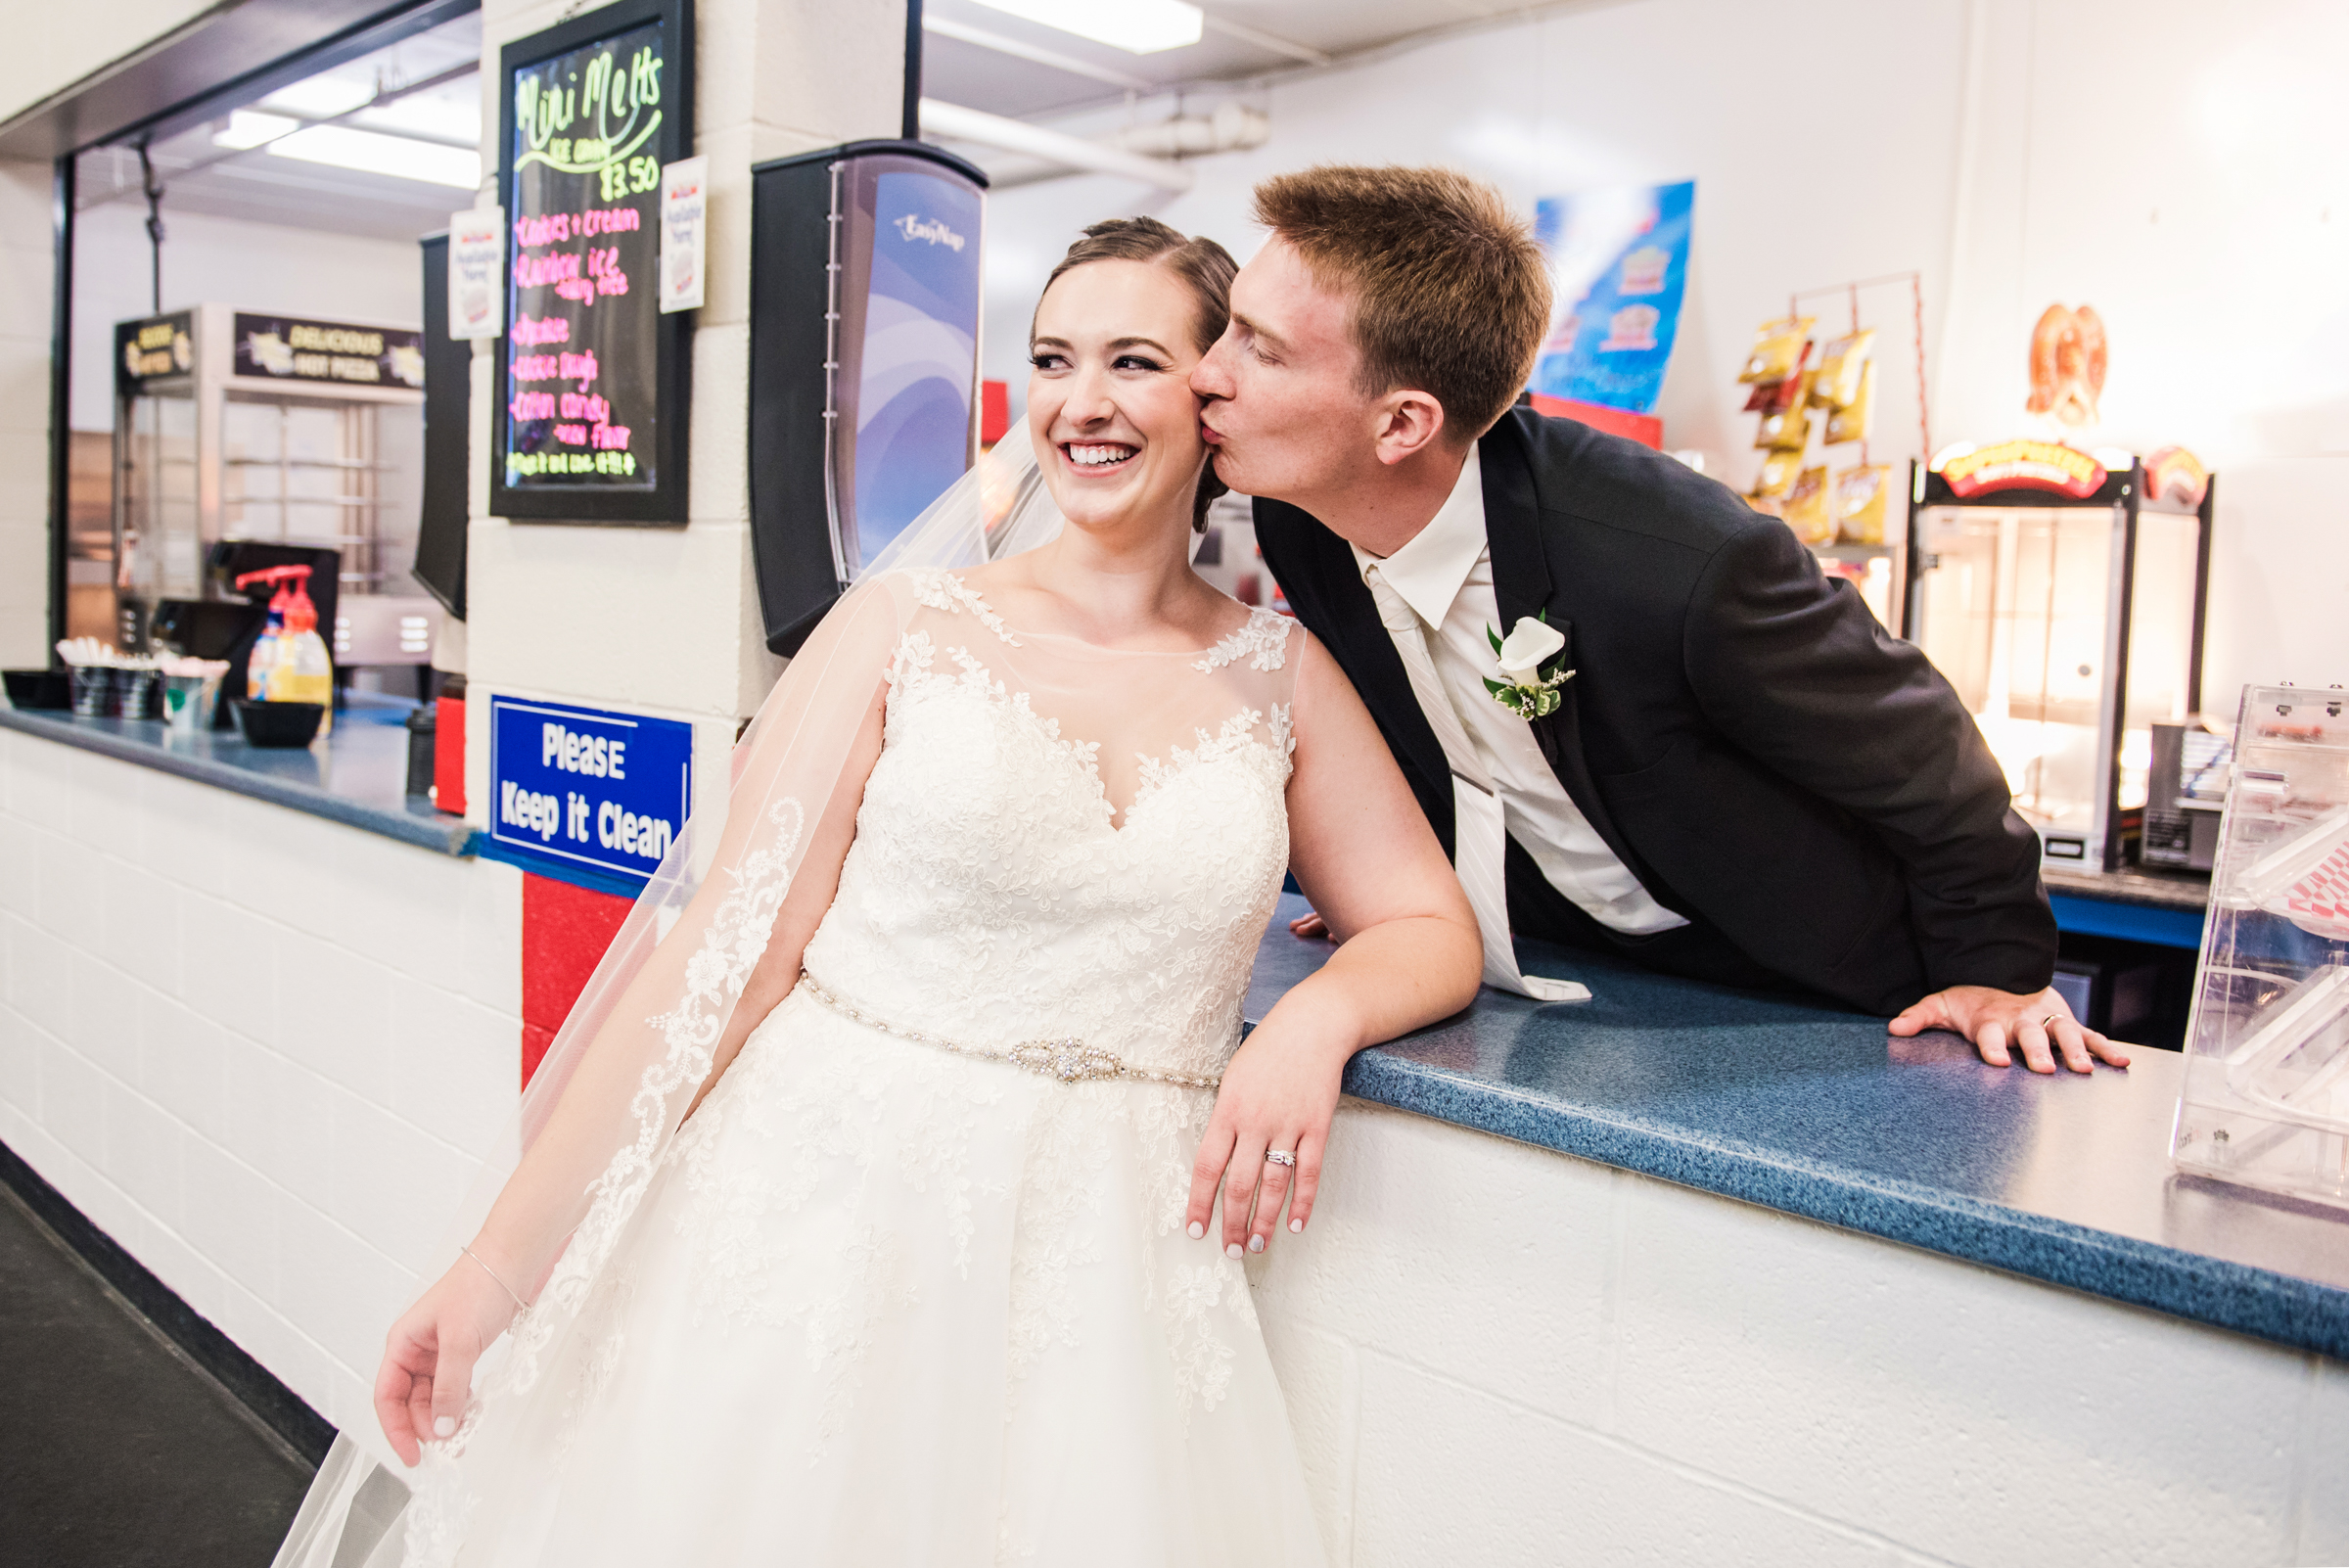 JILL_STUDIO_Wedding_JILL_STUDIO_Rochester_NY_Photographer_22-DSC_4044.jpg